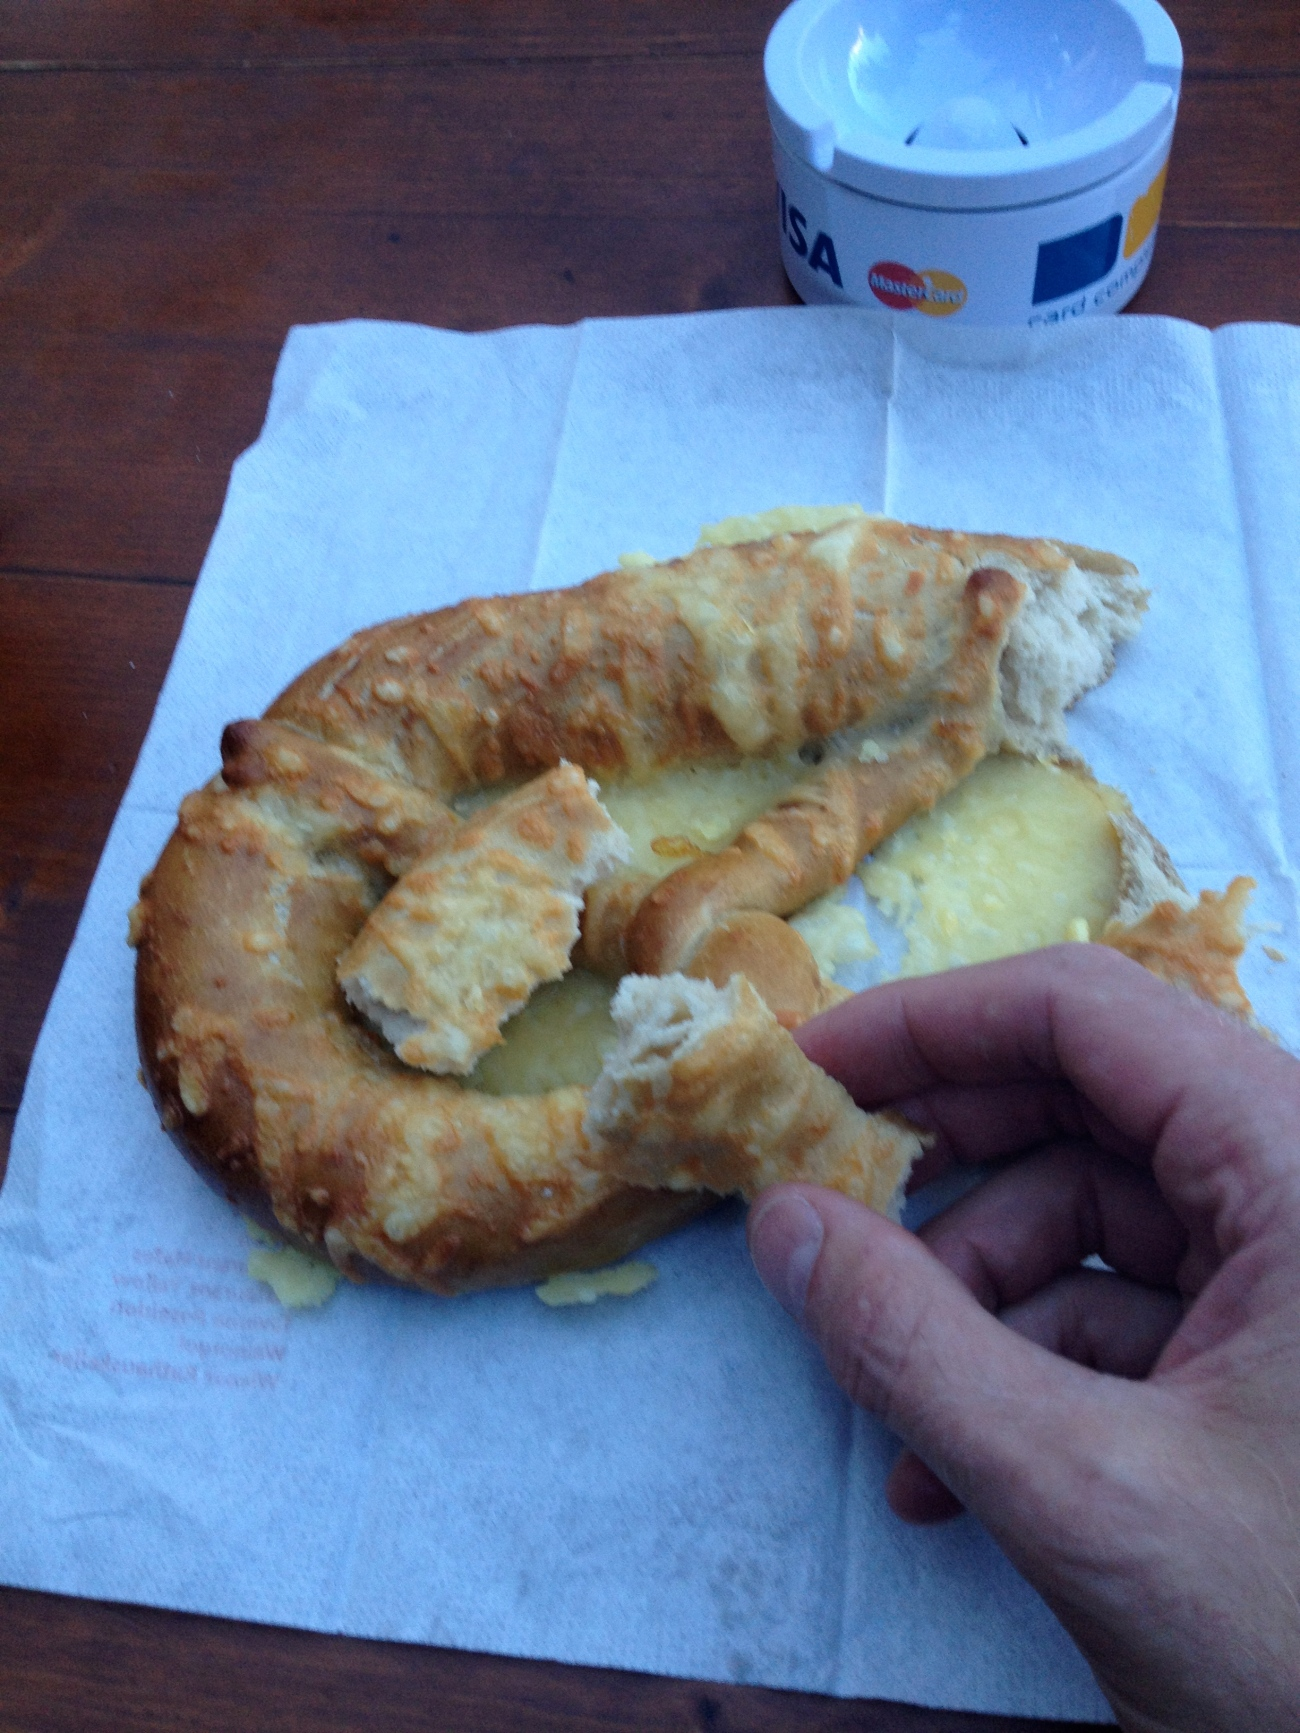 Large cheese pretzel...maybe not such a good idea.